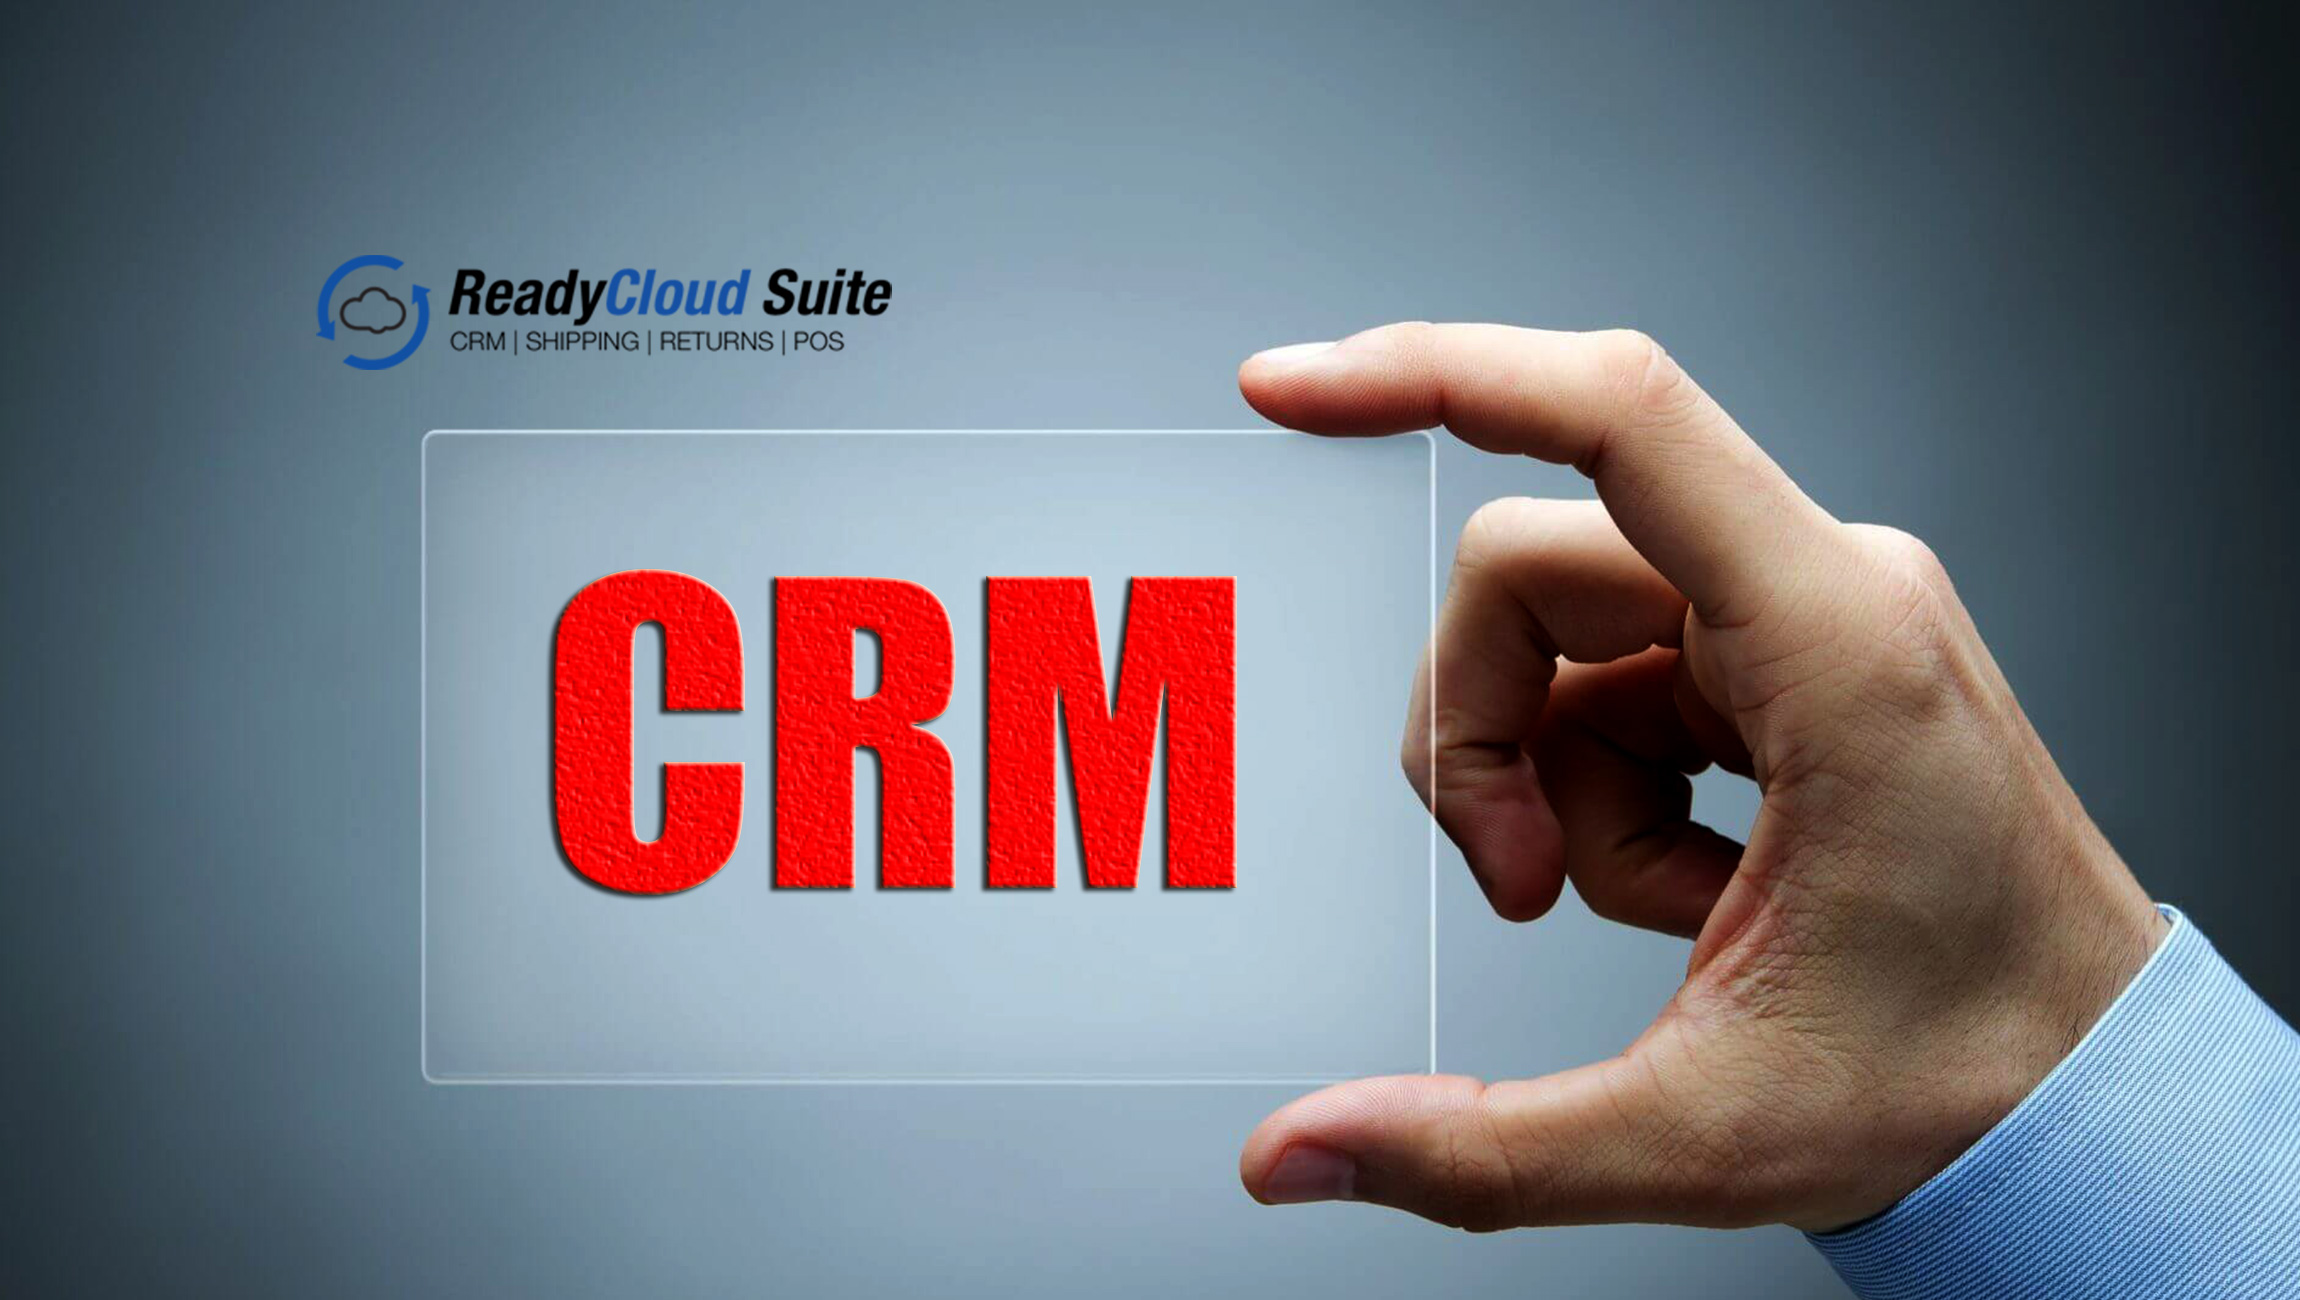 ReadyCloud CRM Rebrands to the ReadyCloud Suite, a CRM, Point-Of-Sale, Email Marketing, Shipping & Returns Solution Built for E-Commerce